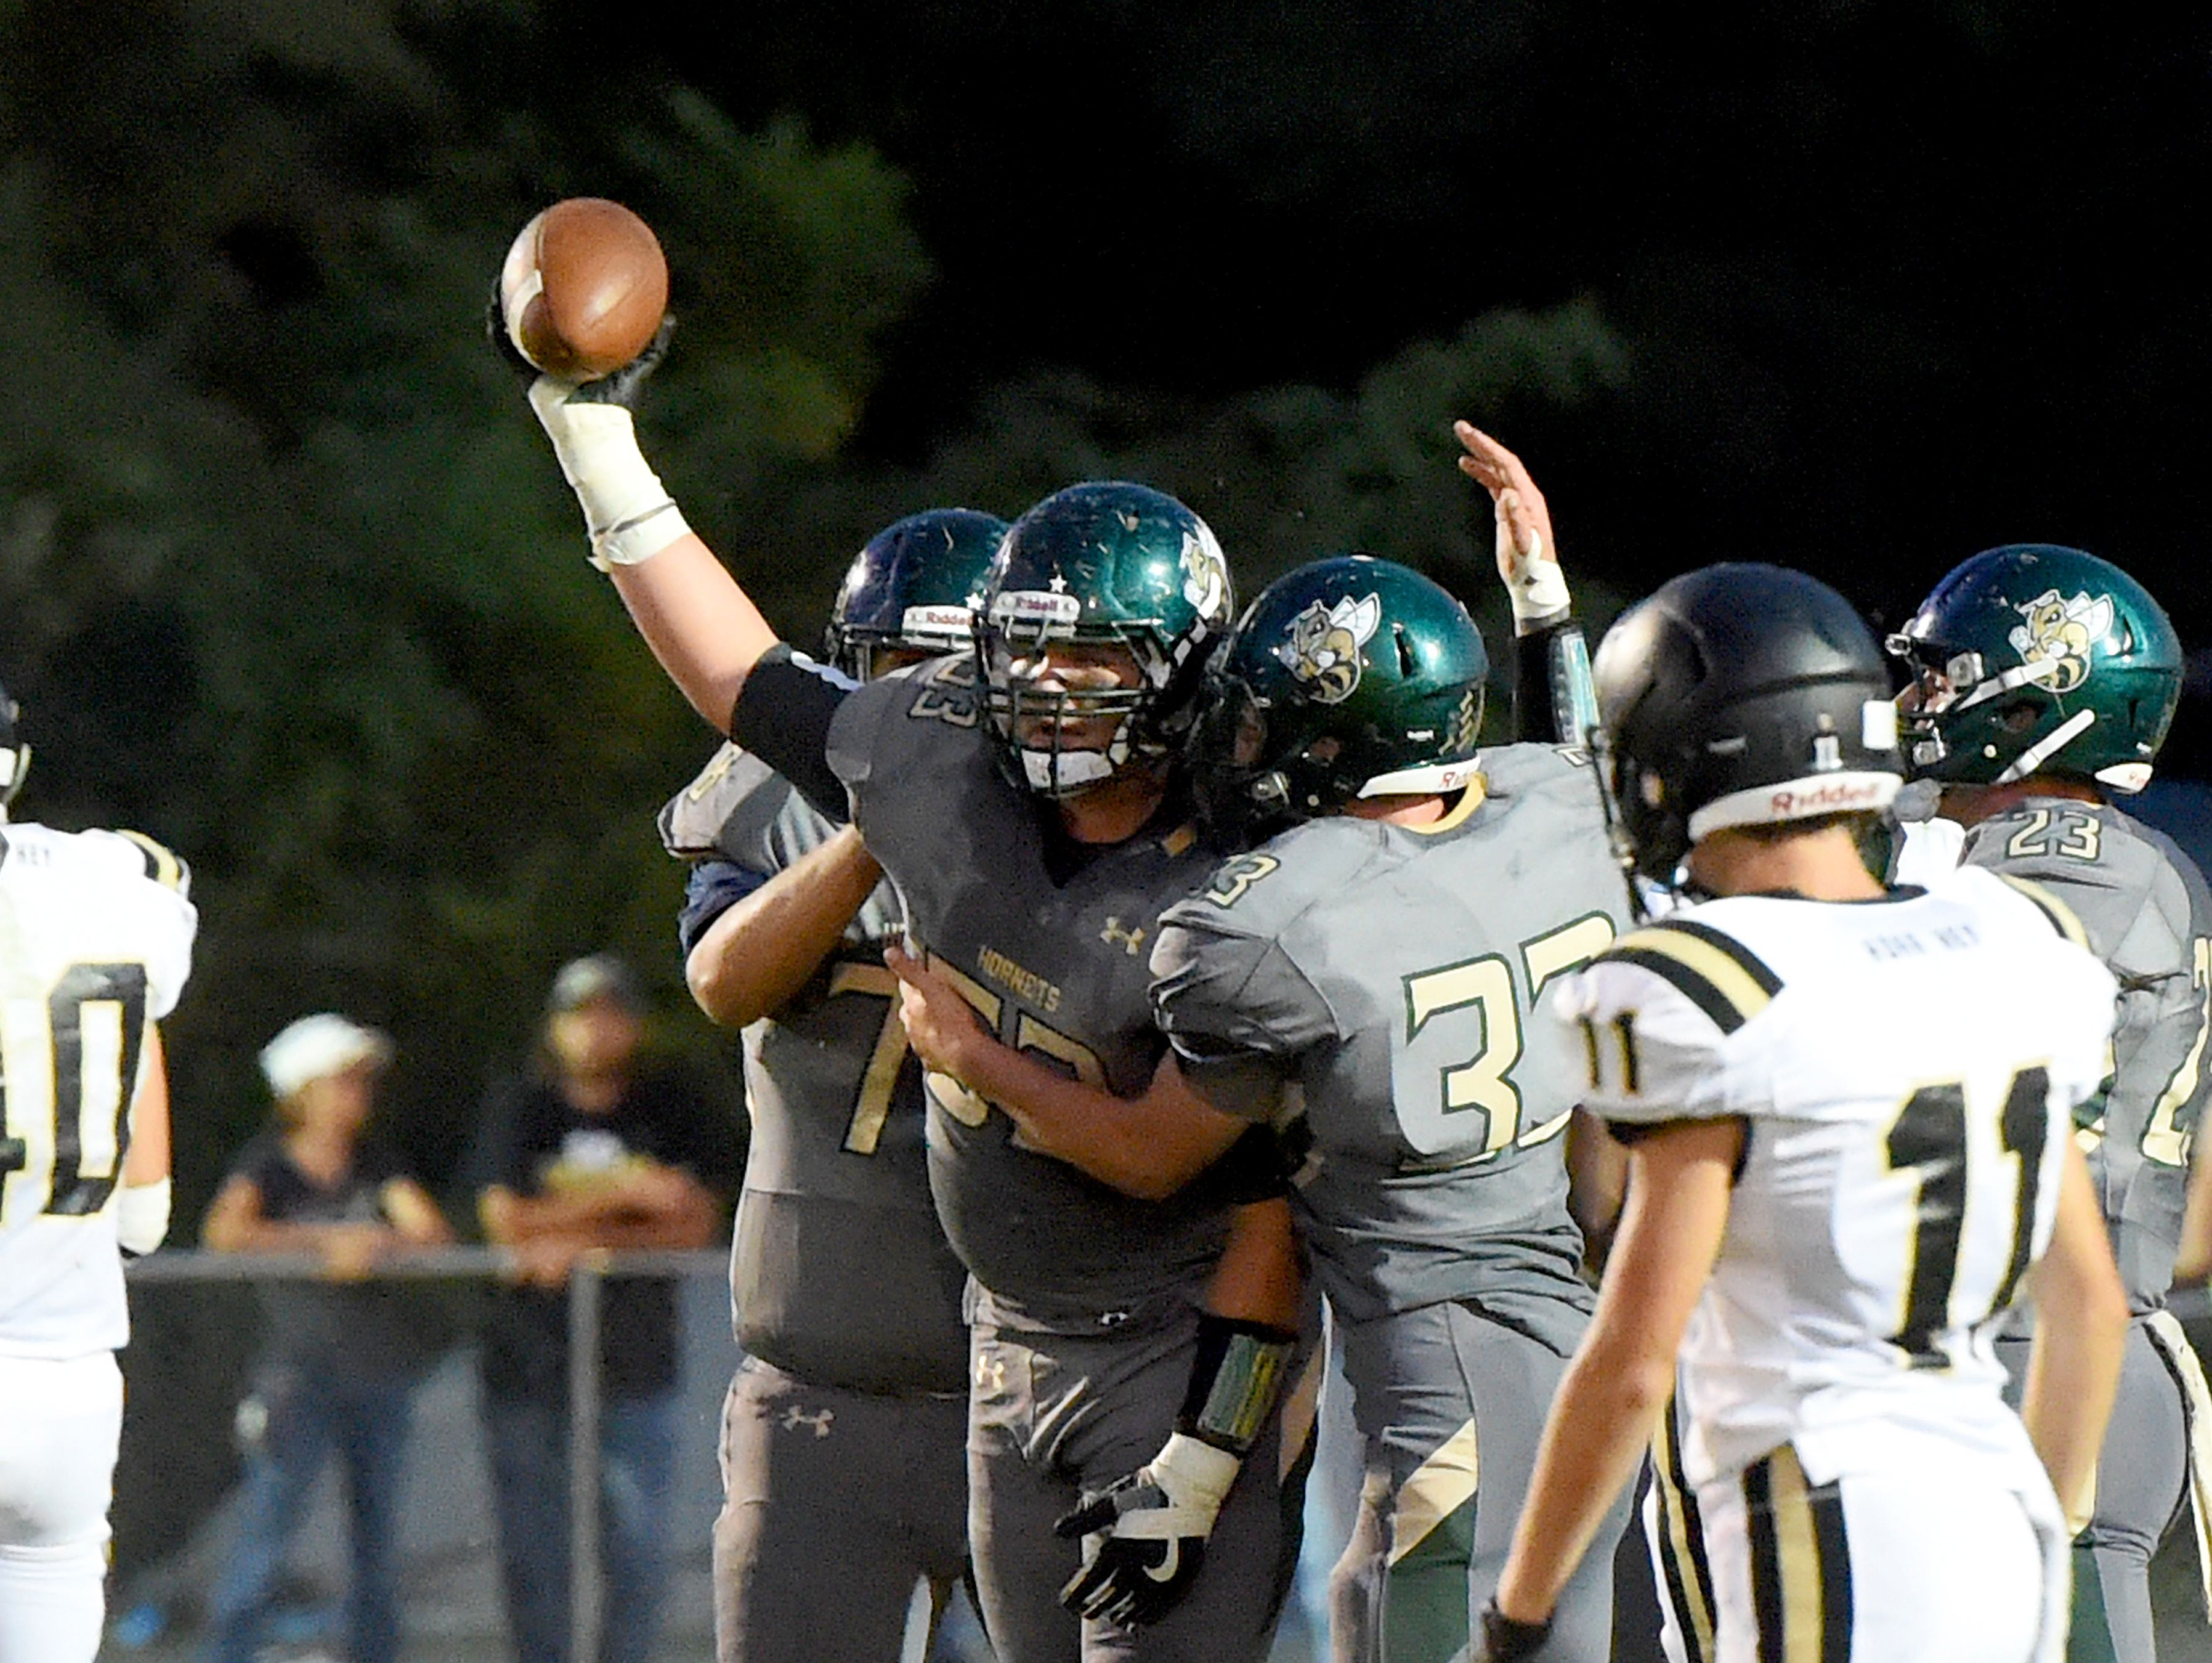 Wilson Memorial's Xavier Black holds up the football after recovering a fumble for a game turnover during a football game played in Fishersville on Friday, Sept. 23, 2016.